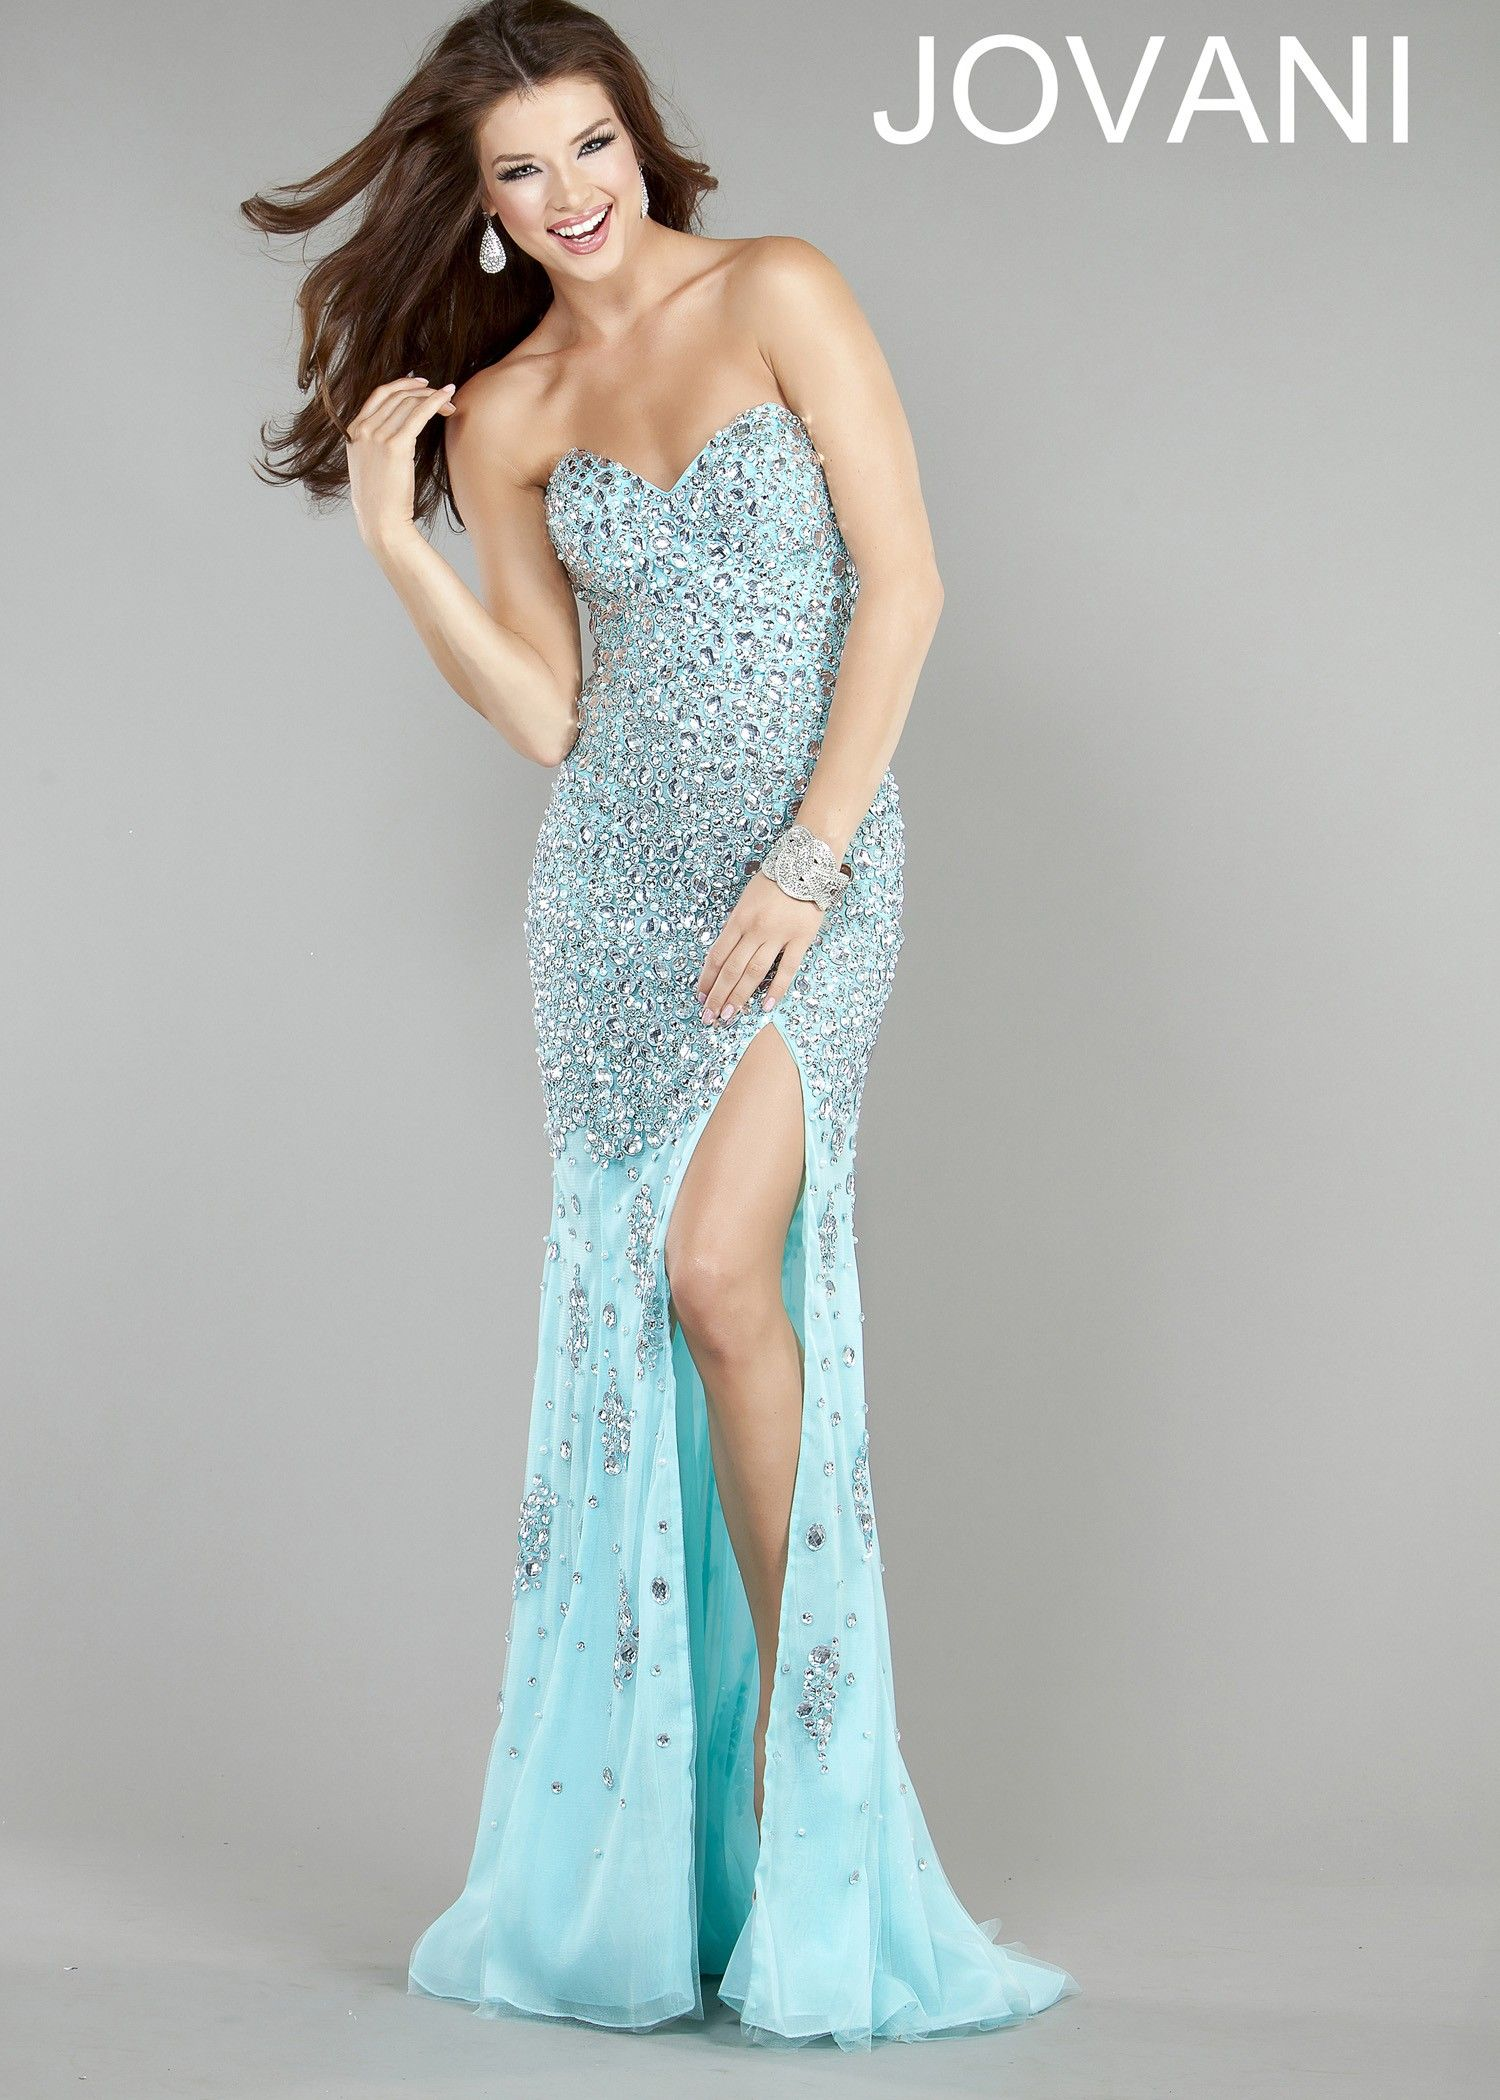 Jovani 4247 Silver/Nude Dress for $690: Long, Strapless ...